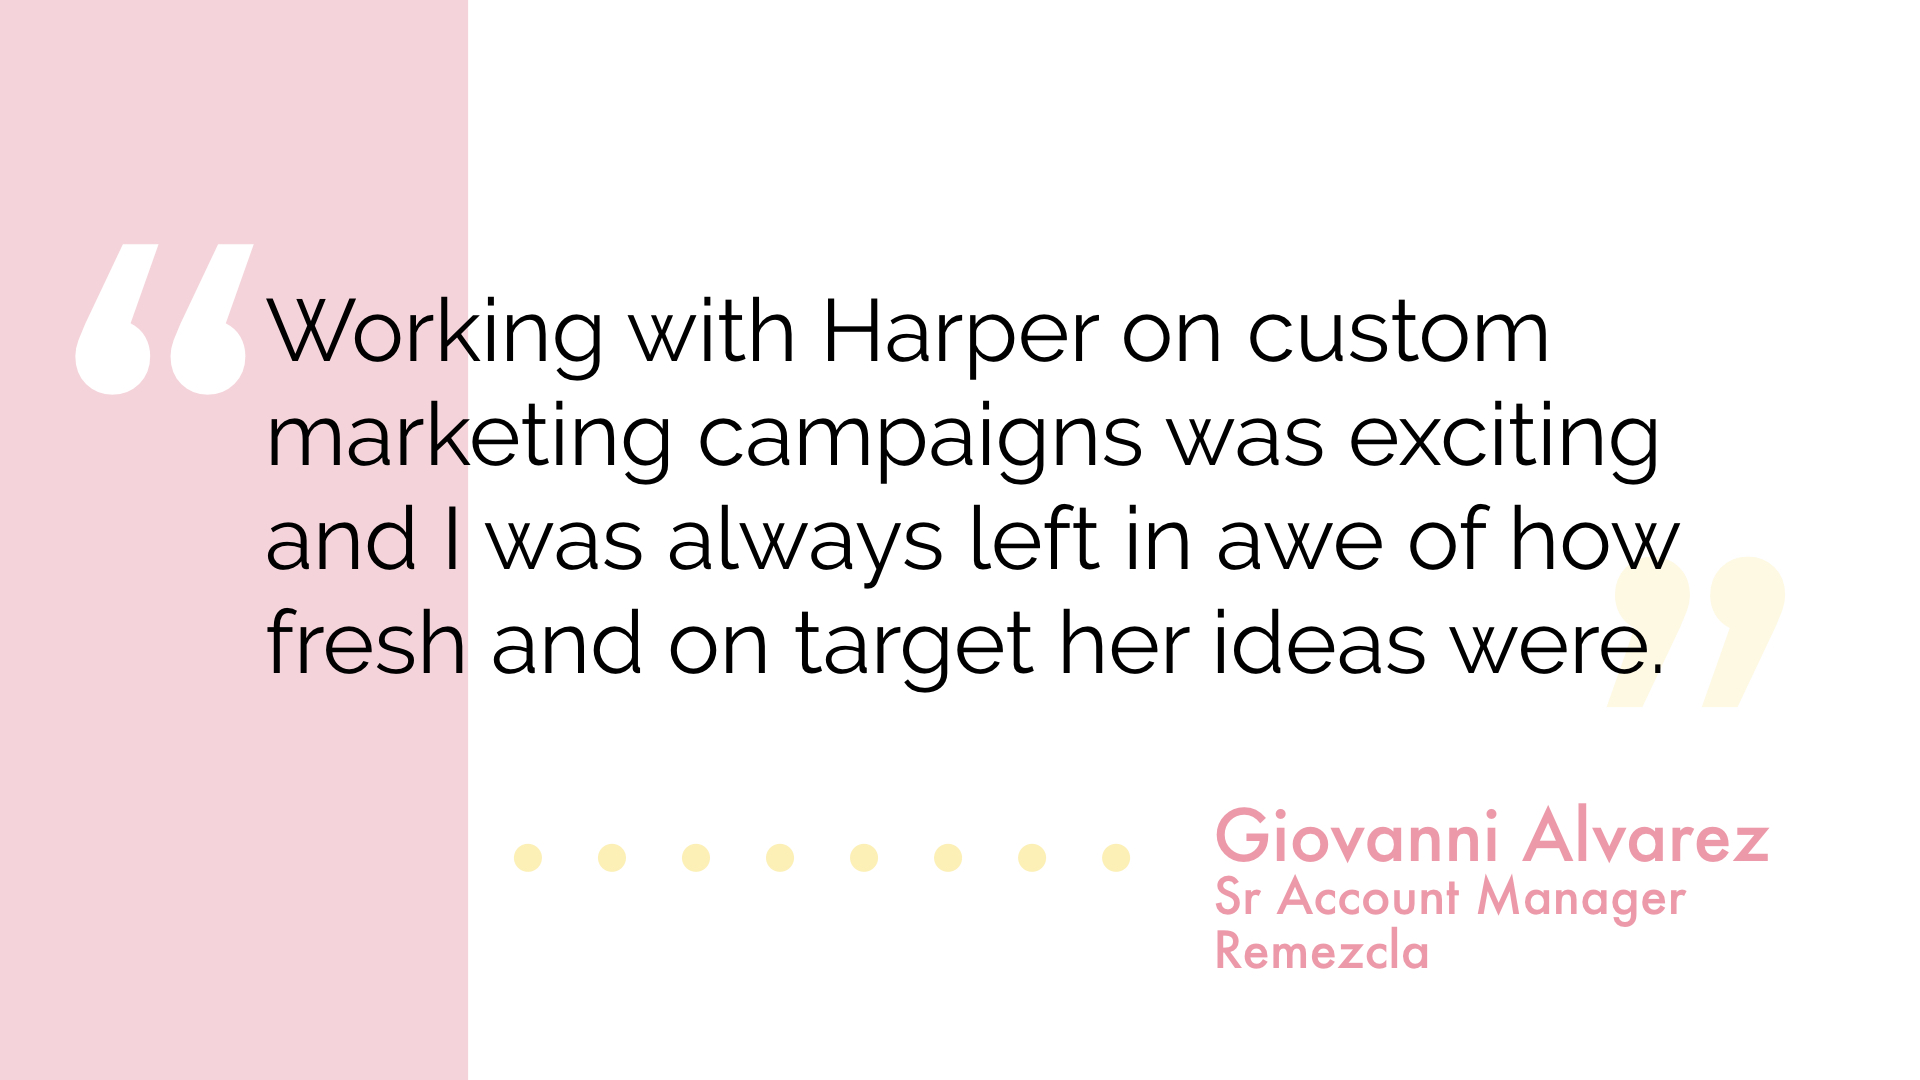 An extremely bright and innovative professional with a sharp perspective on what works for brands